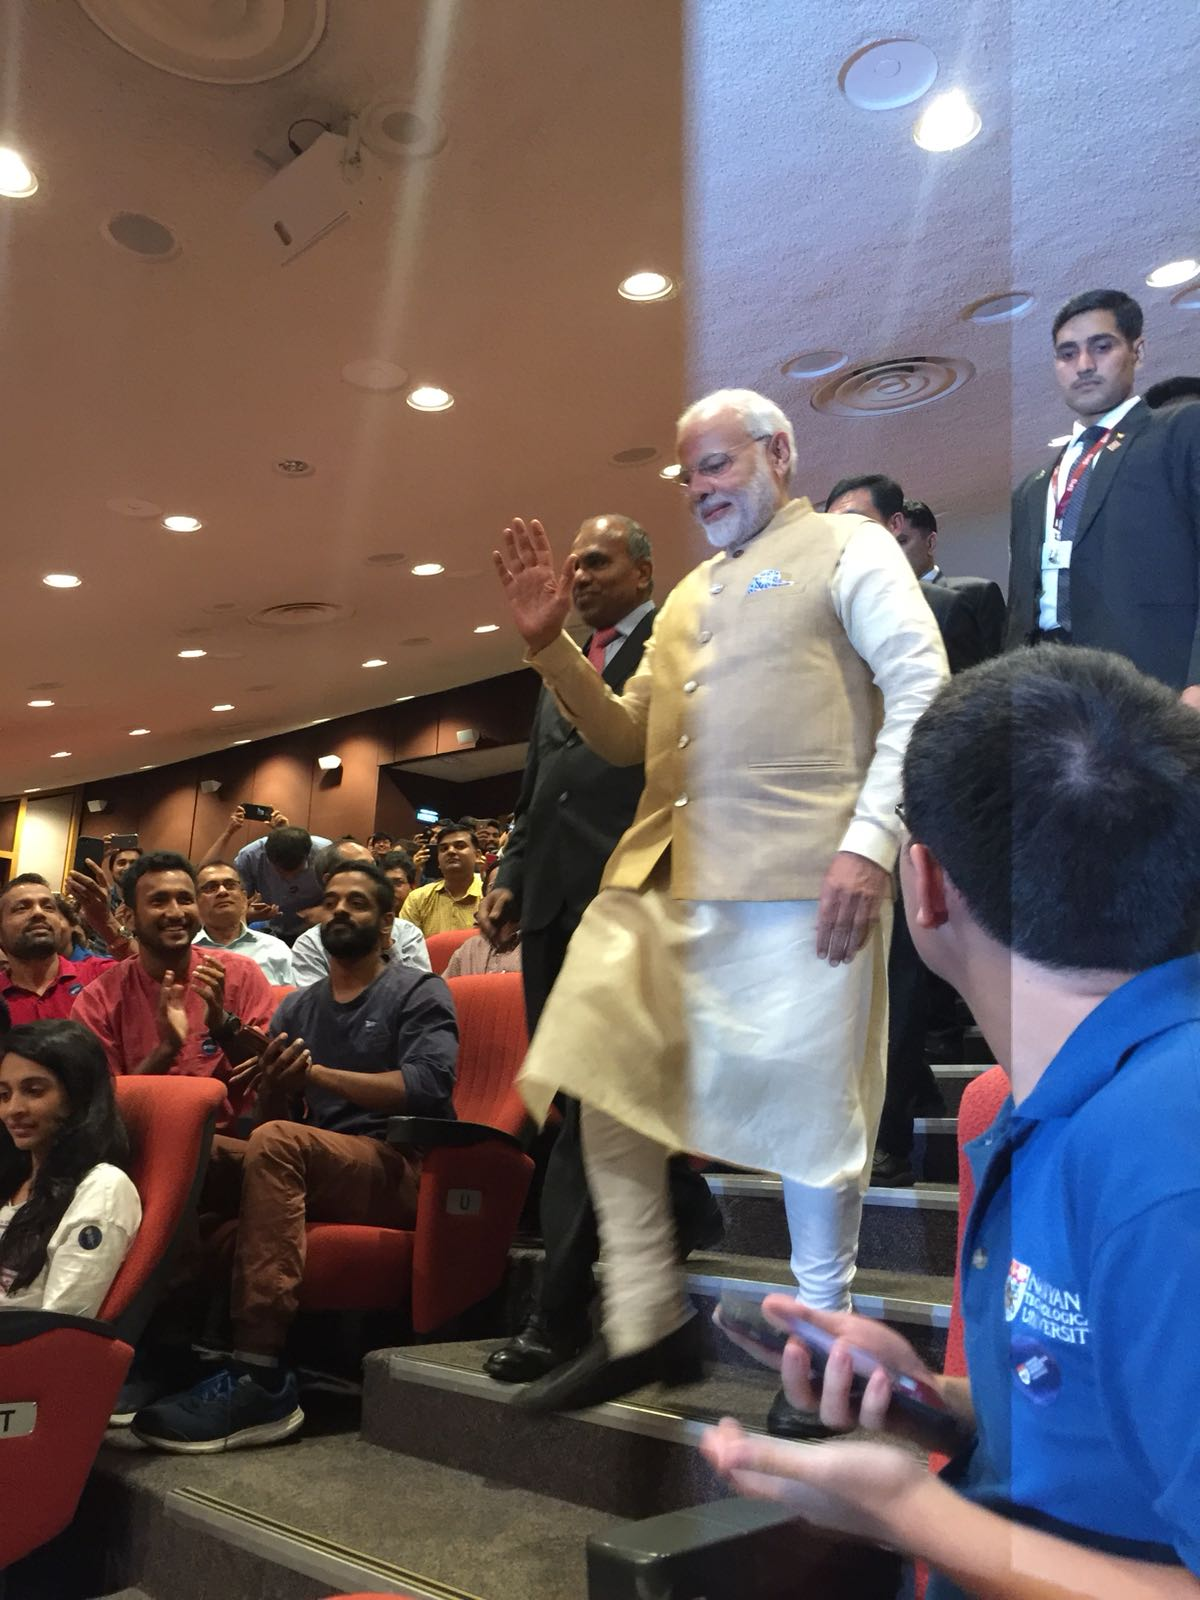 There was considerable excitement among the student community as Indian Prime Minister Narendra Modi reached Nanyang Technical University (NTU) to participate in the interaction titled 'Transforming Asia through Innovation'.